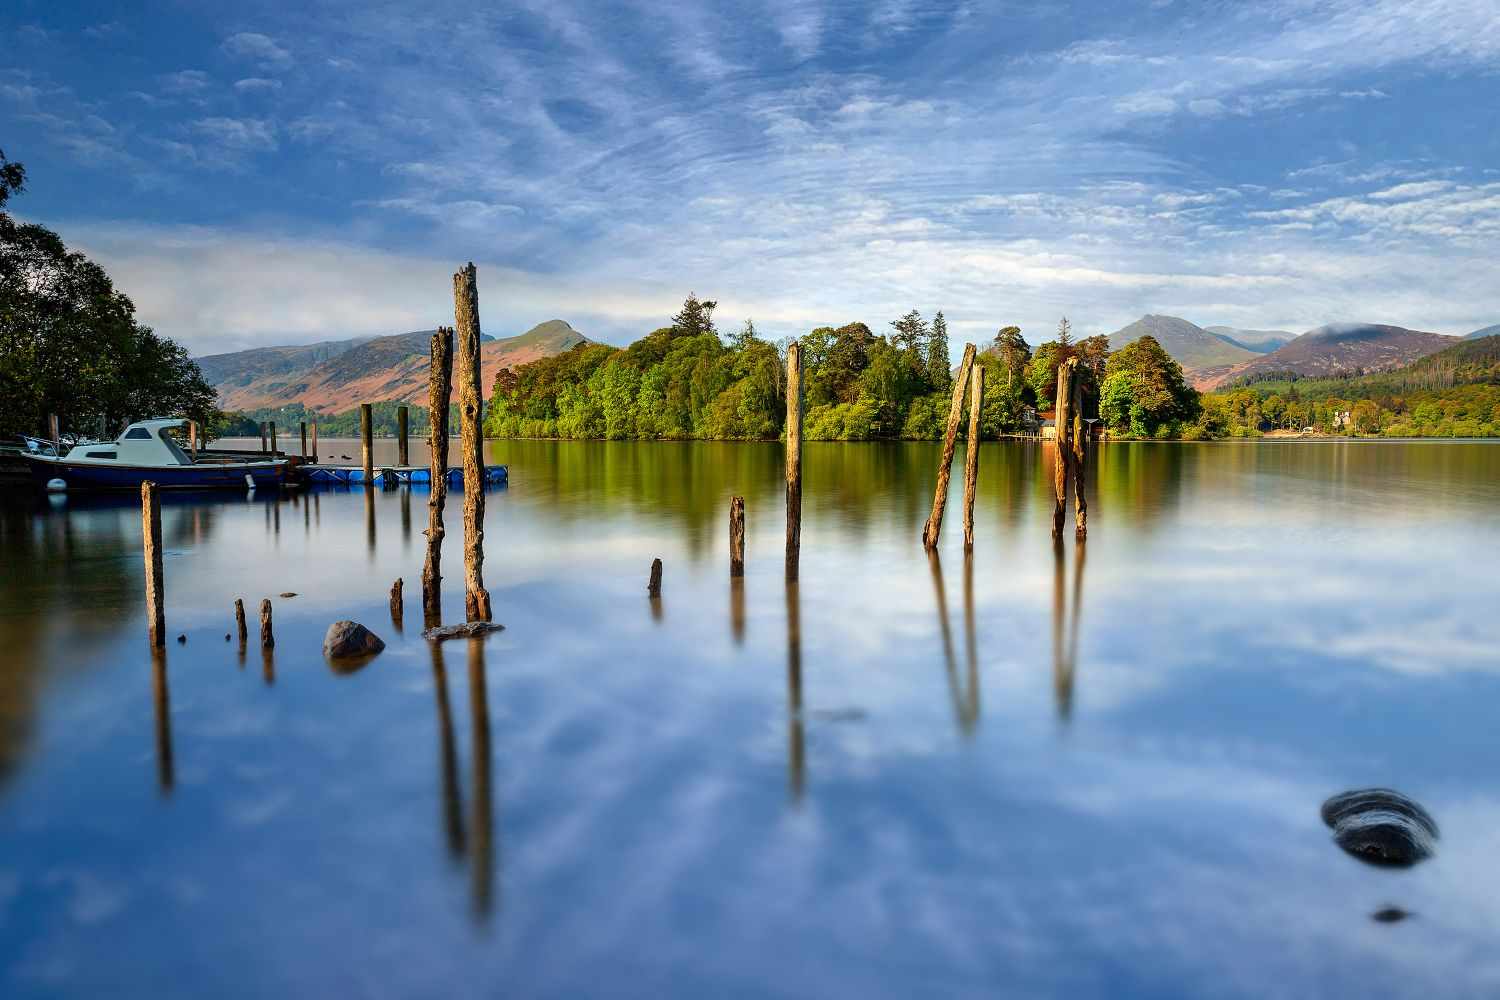 Spring comes to Derwentwater by Martin Lawrence